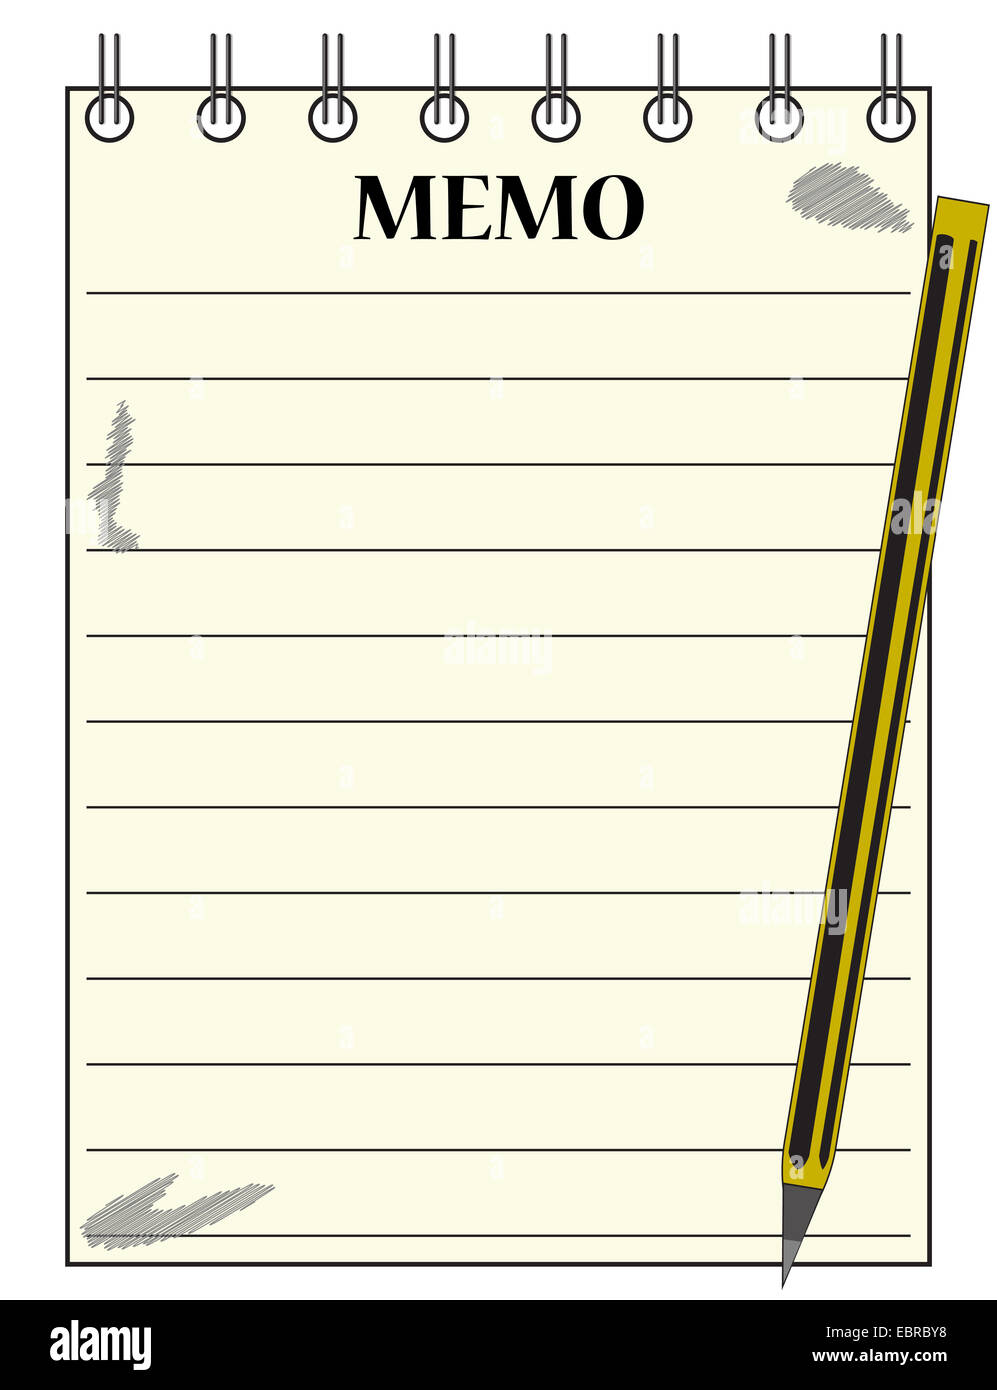 a lined memo blank notepad template or background a pencil a lined memo blank notepad template or background a pencil isolated on a white background